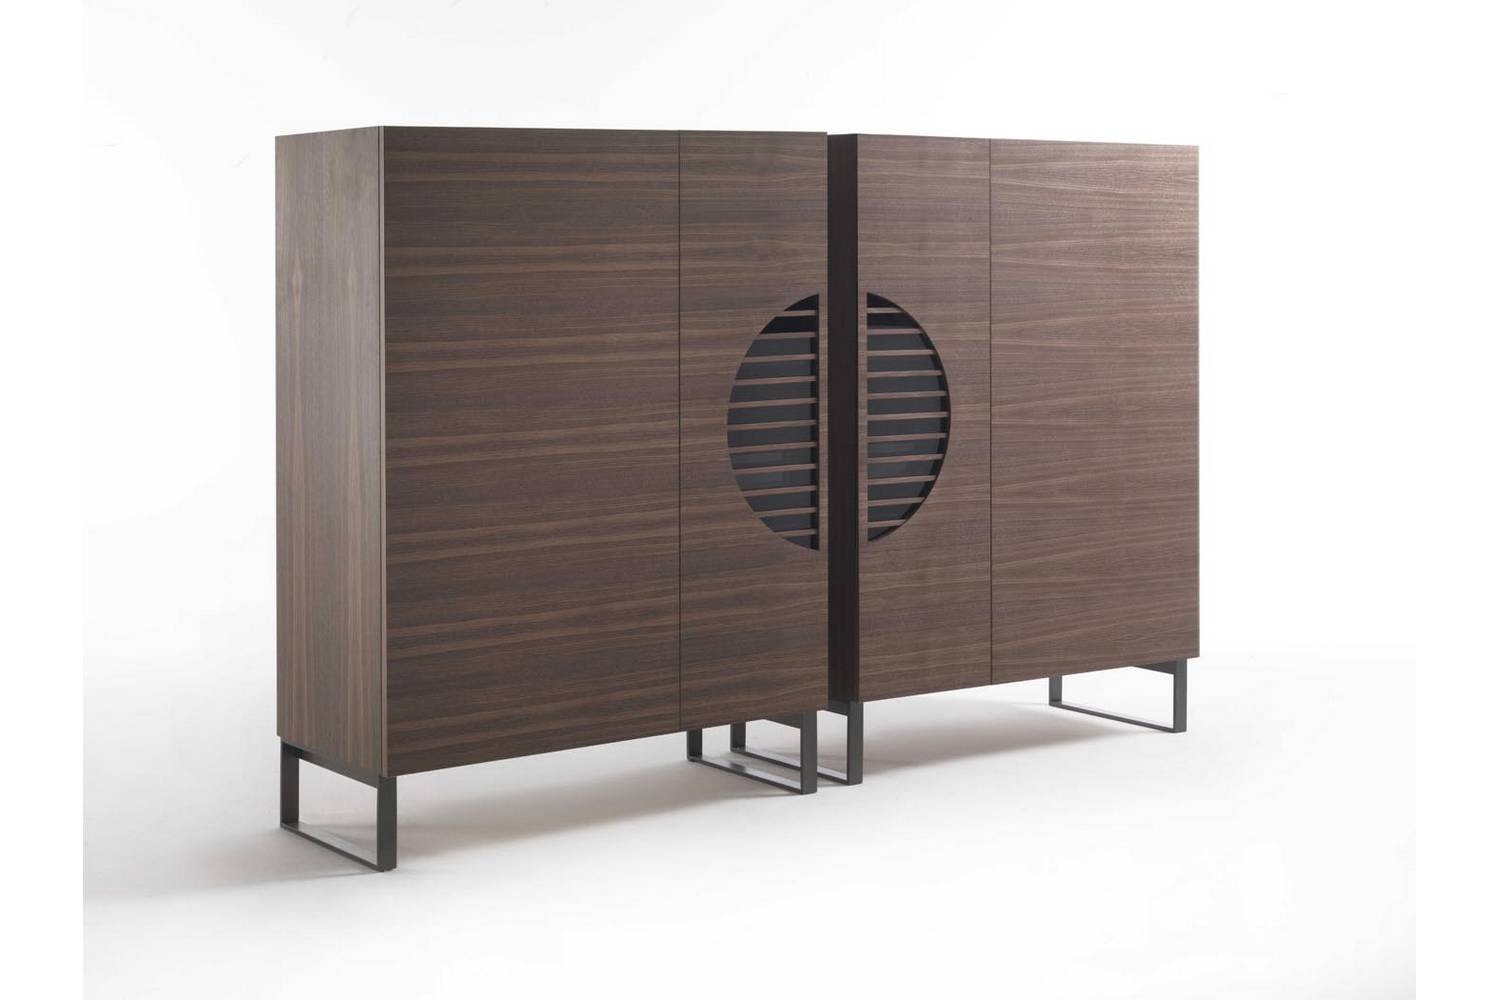 Polifemo Bar Cabinet by G. Azzarello for Porada